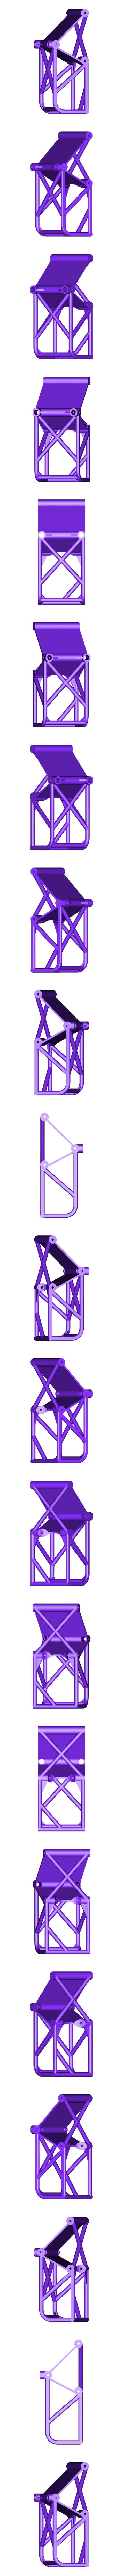 Frame03.stl Download free STL file Fully printable Monster Truck • 3D printer design, tahustvedt